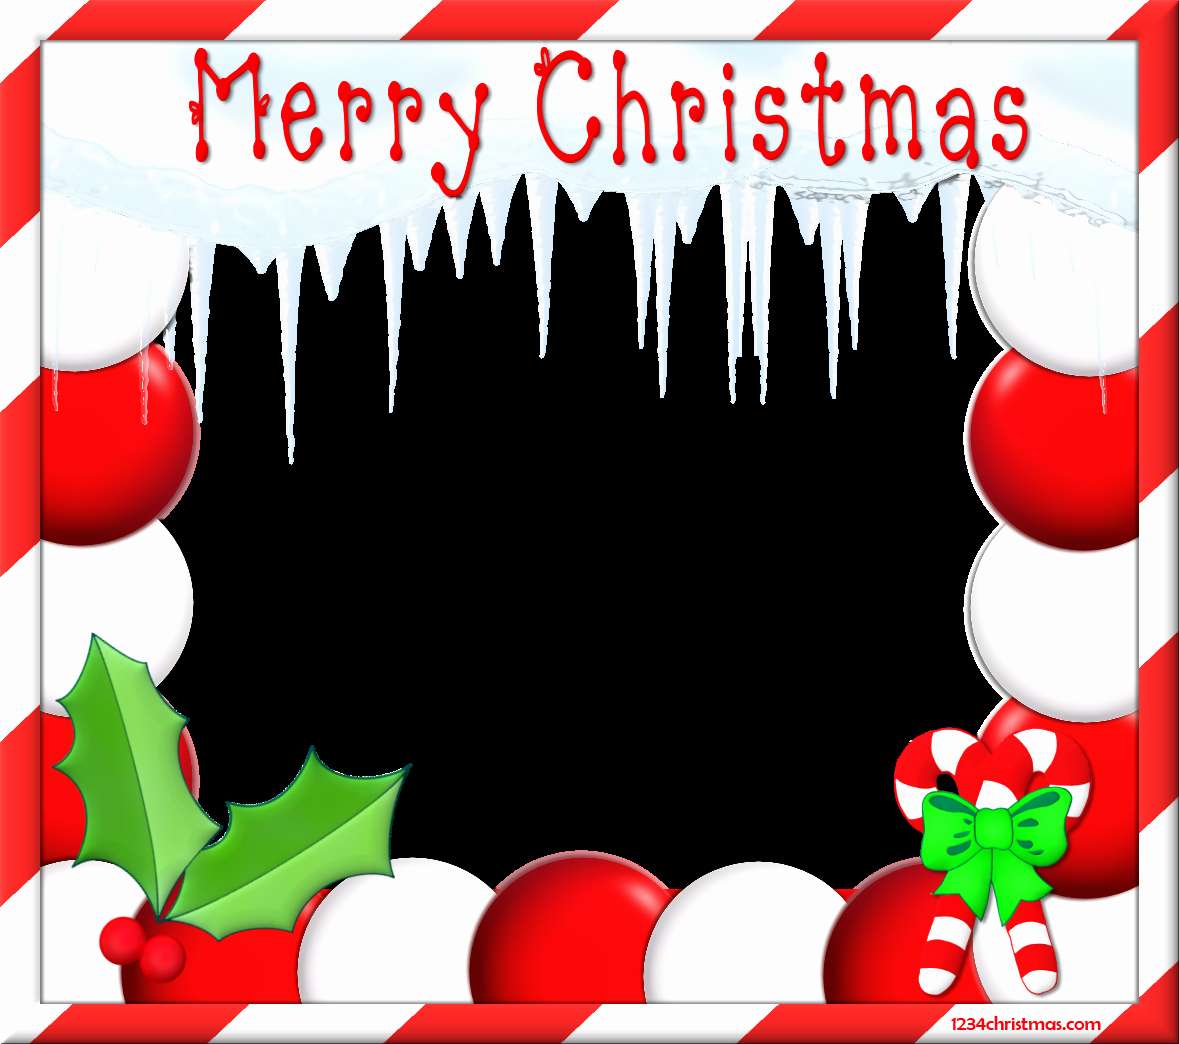 Free Christmas Photo Templates Beautiful Christmas Frame Templates for Free Download